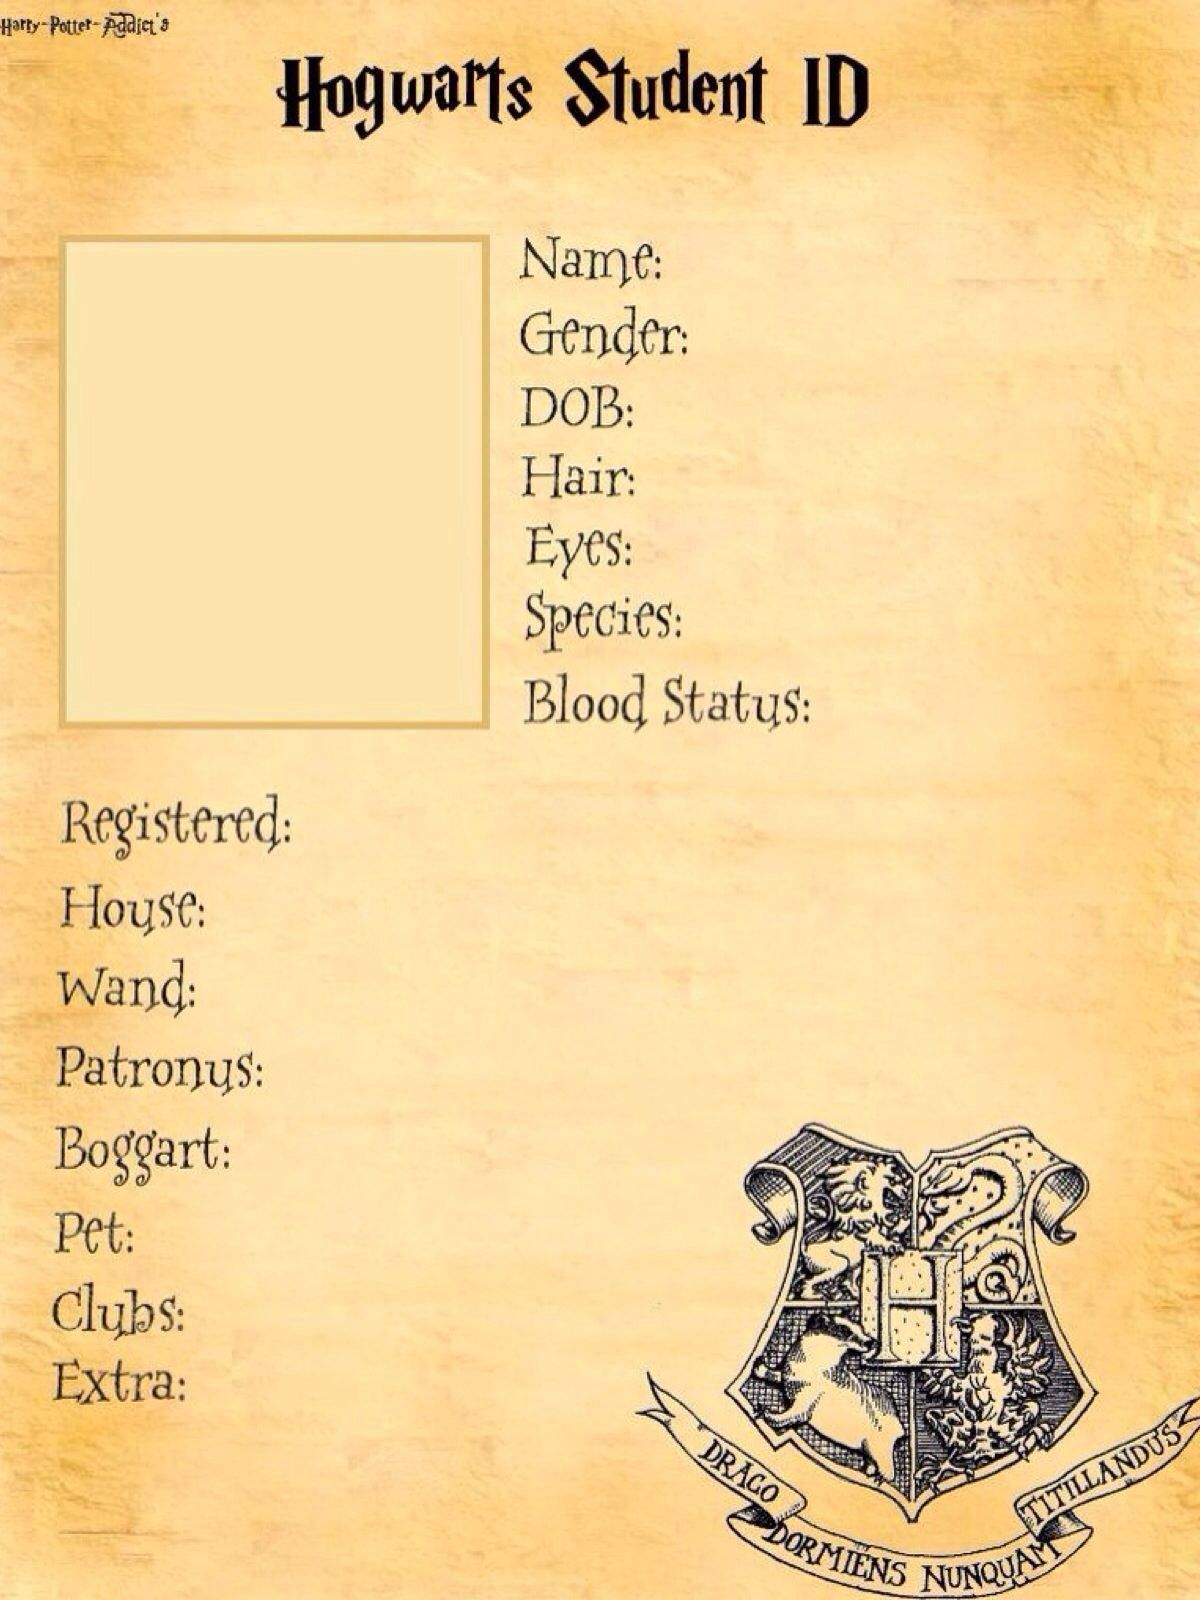 Hogwarts student id template try and fill it in if you can